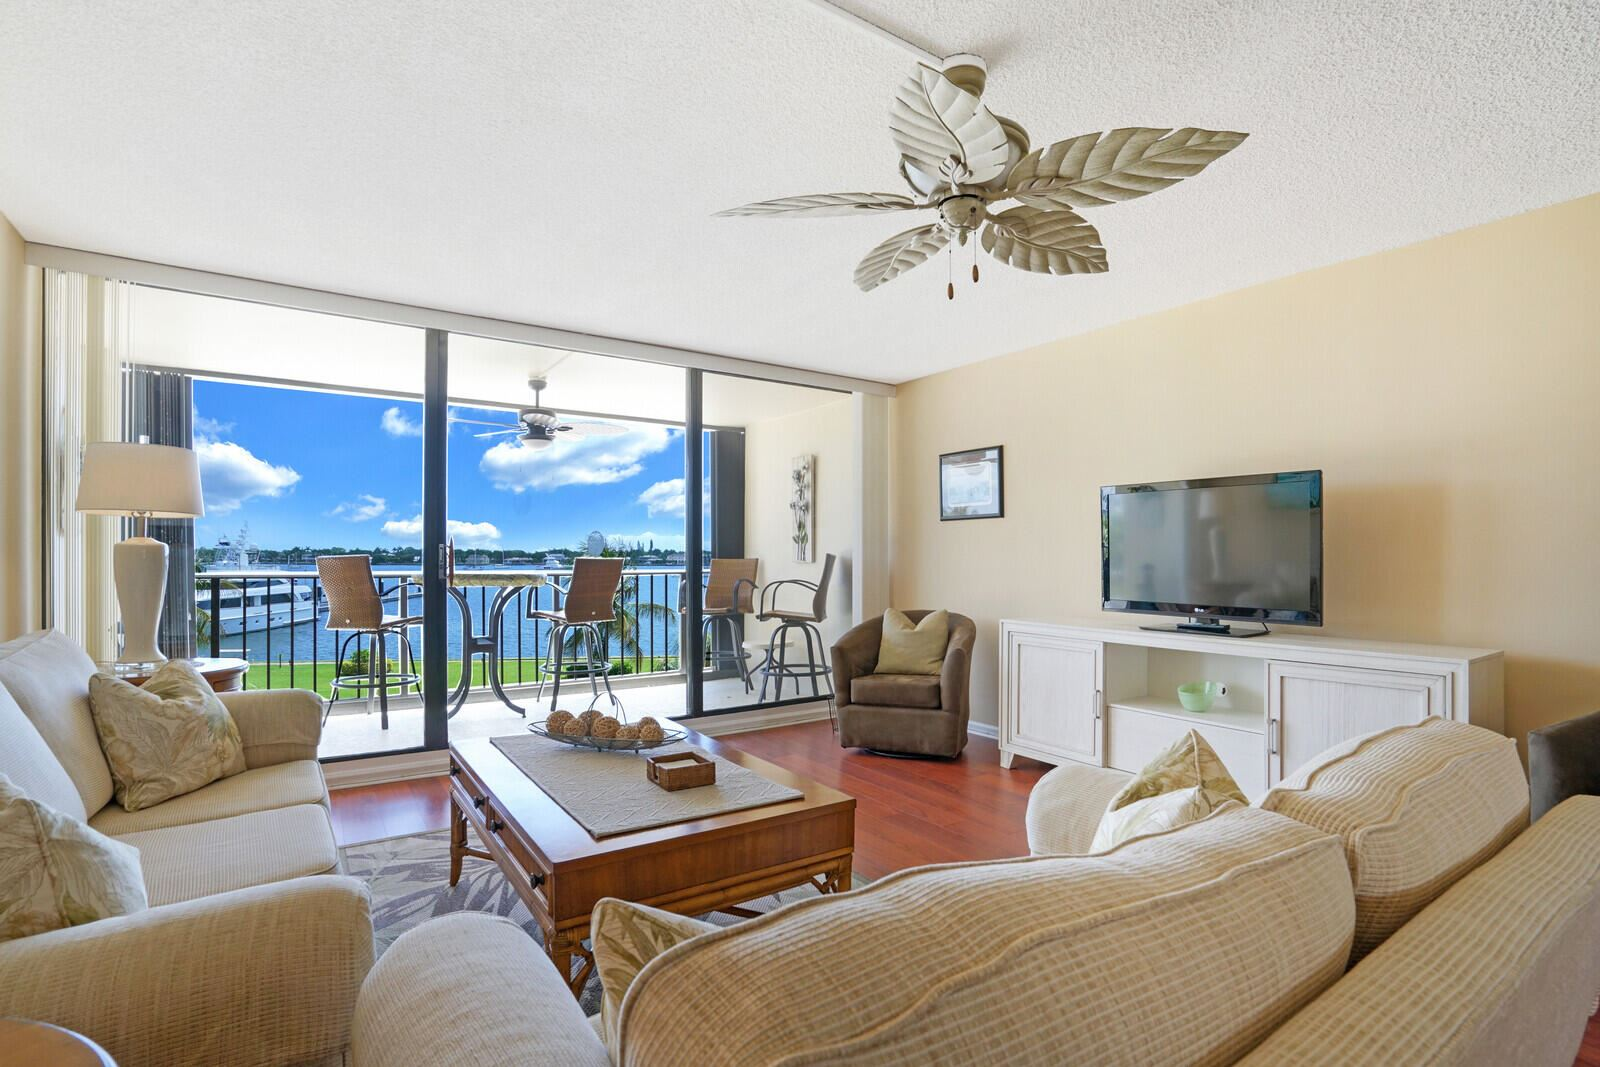 Photo of 134 Lakeshore Drive #315, North Palm Beach, FL 33408 (MLS # RX-10716008)